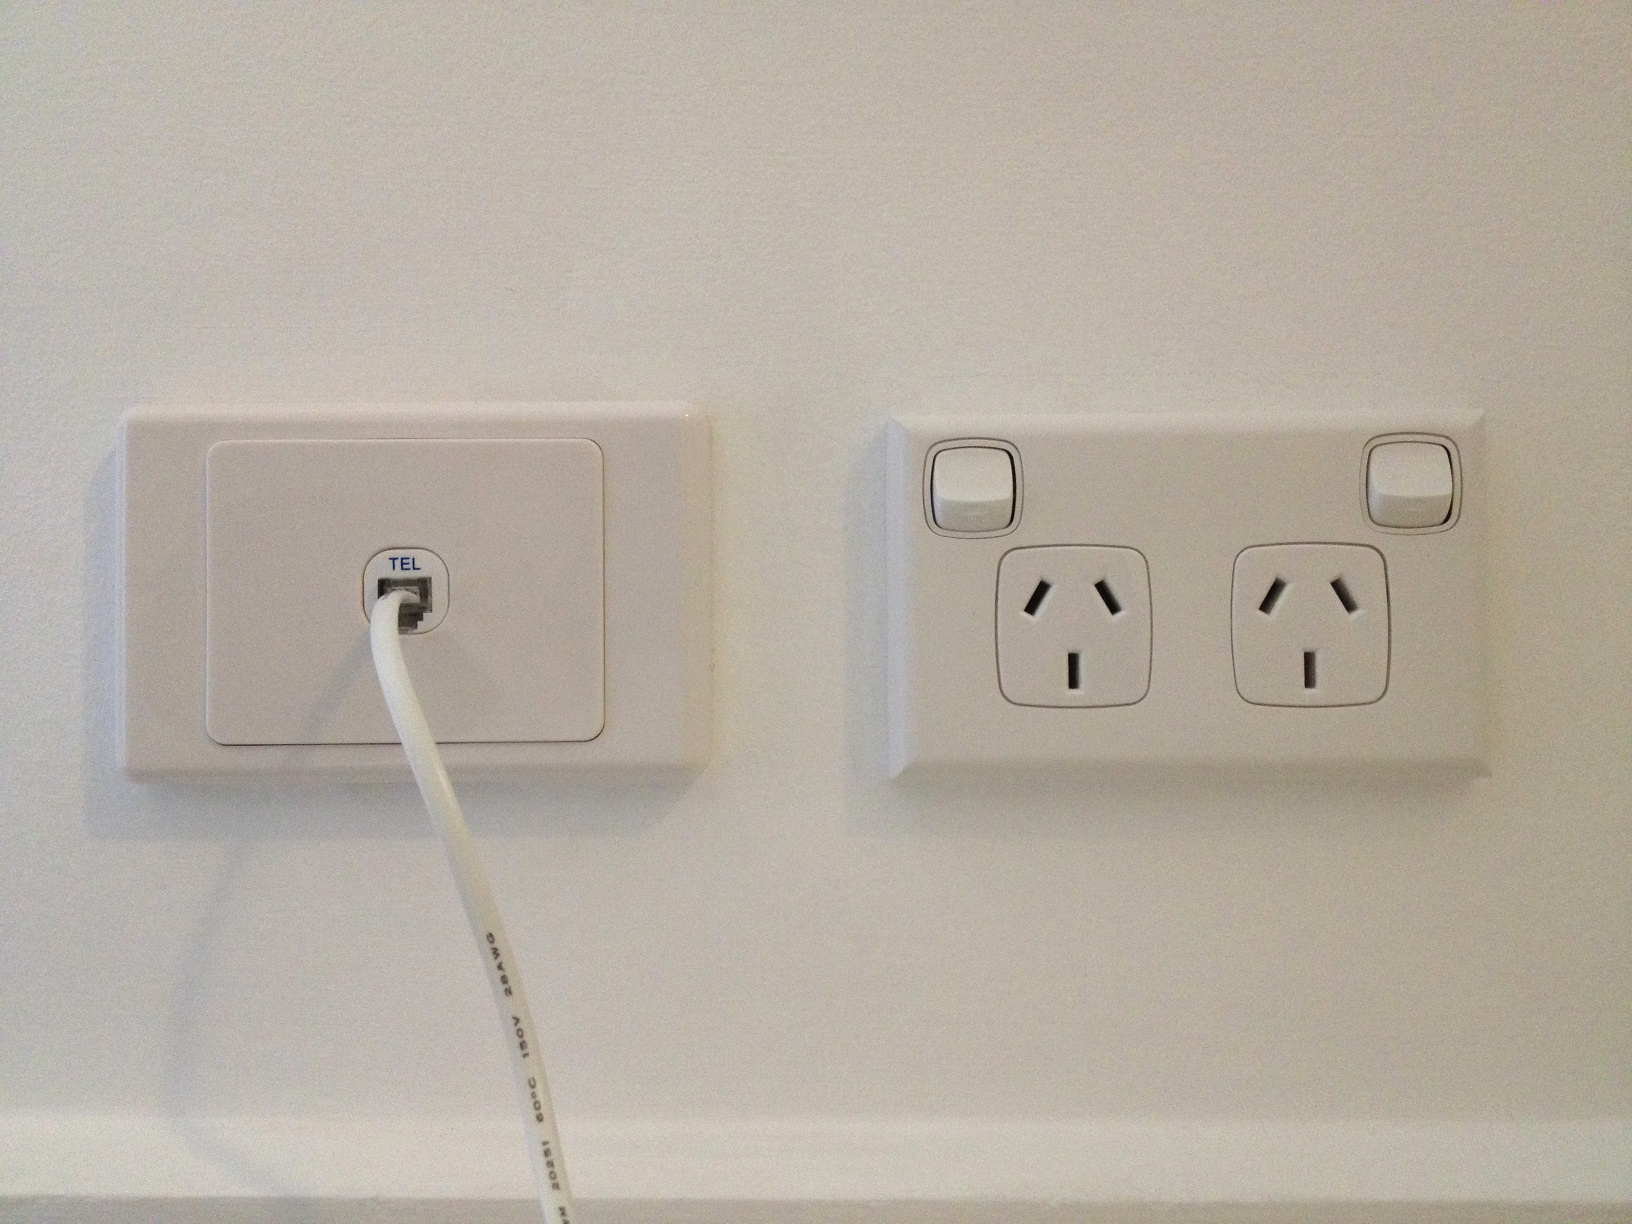 phone socket upgraded1?w=640&h=480 upgrading a 600 series phone socket to rj11 tp69 telstra wall plate wiring diagram at edmiracle.co